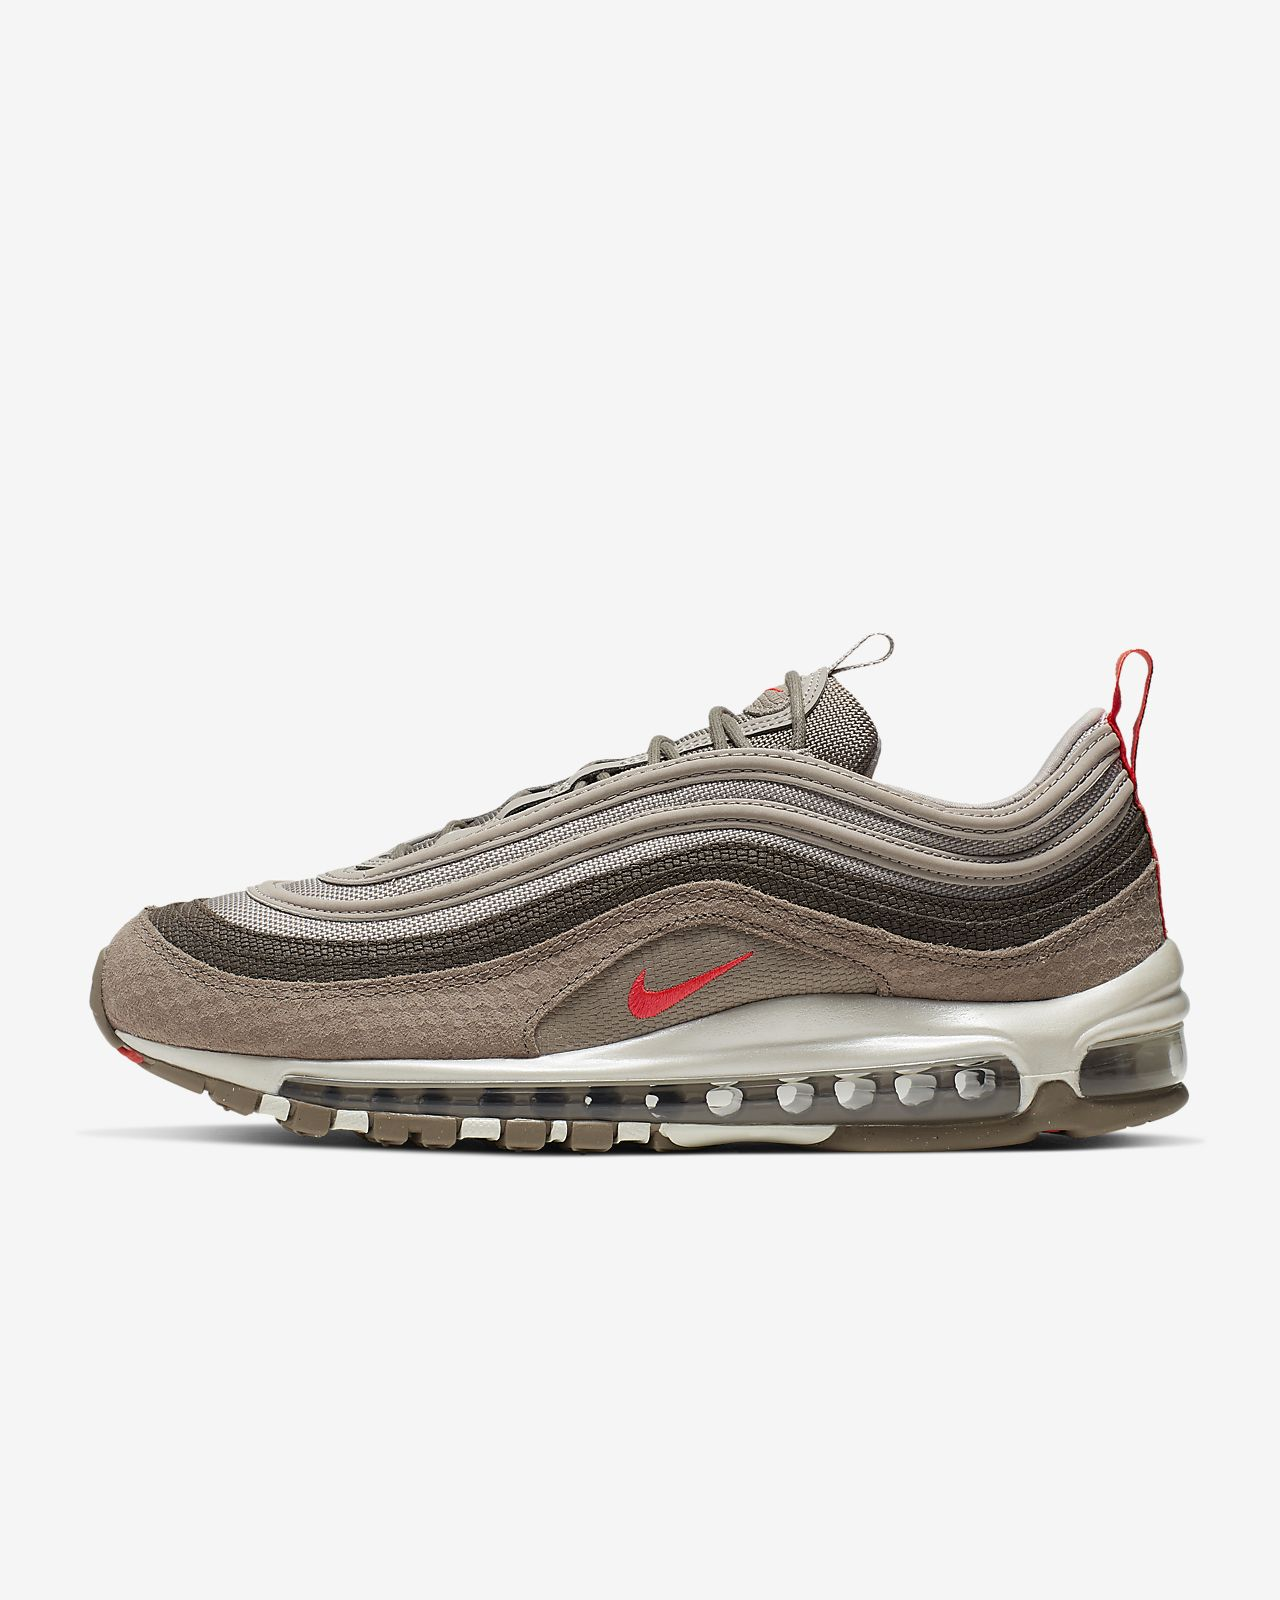 0c22b18cd2a18d Nike Air Max 97 Premium Men s Shoe. Nike.com